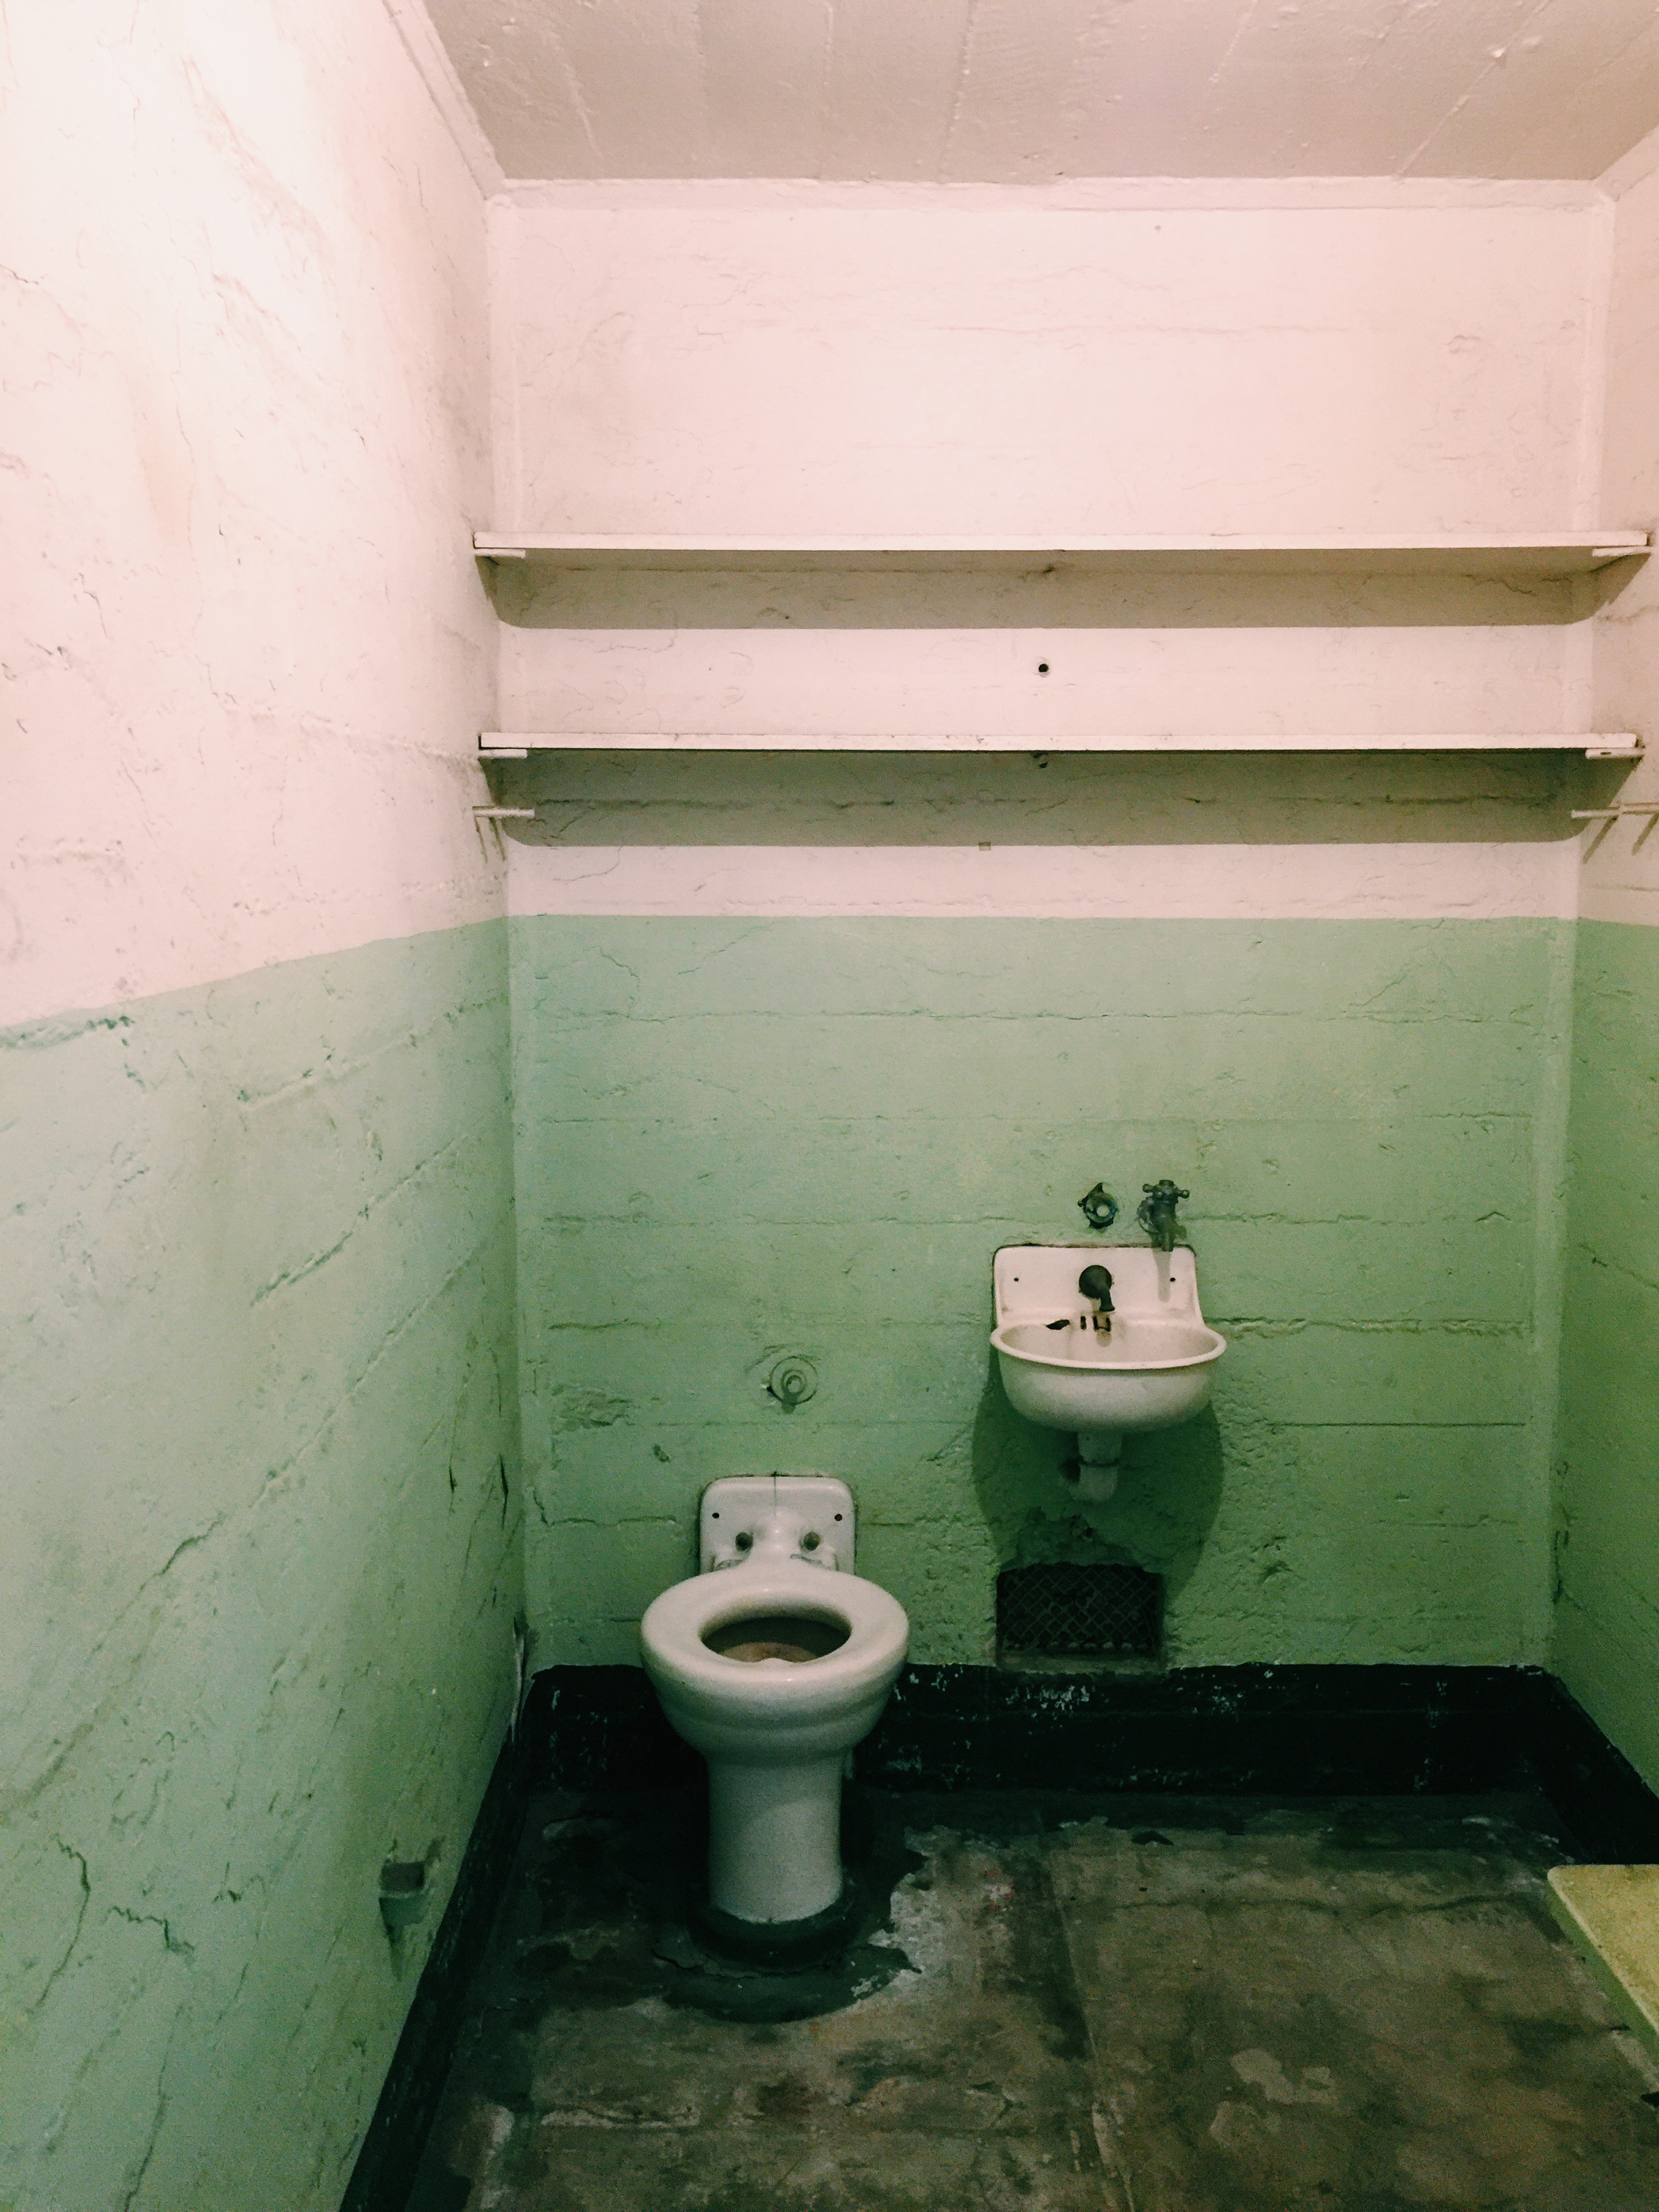 A typical inmate cell